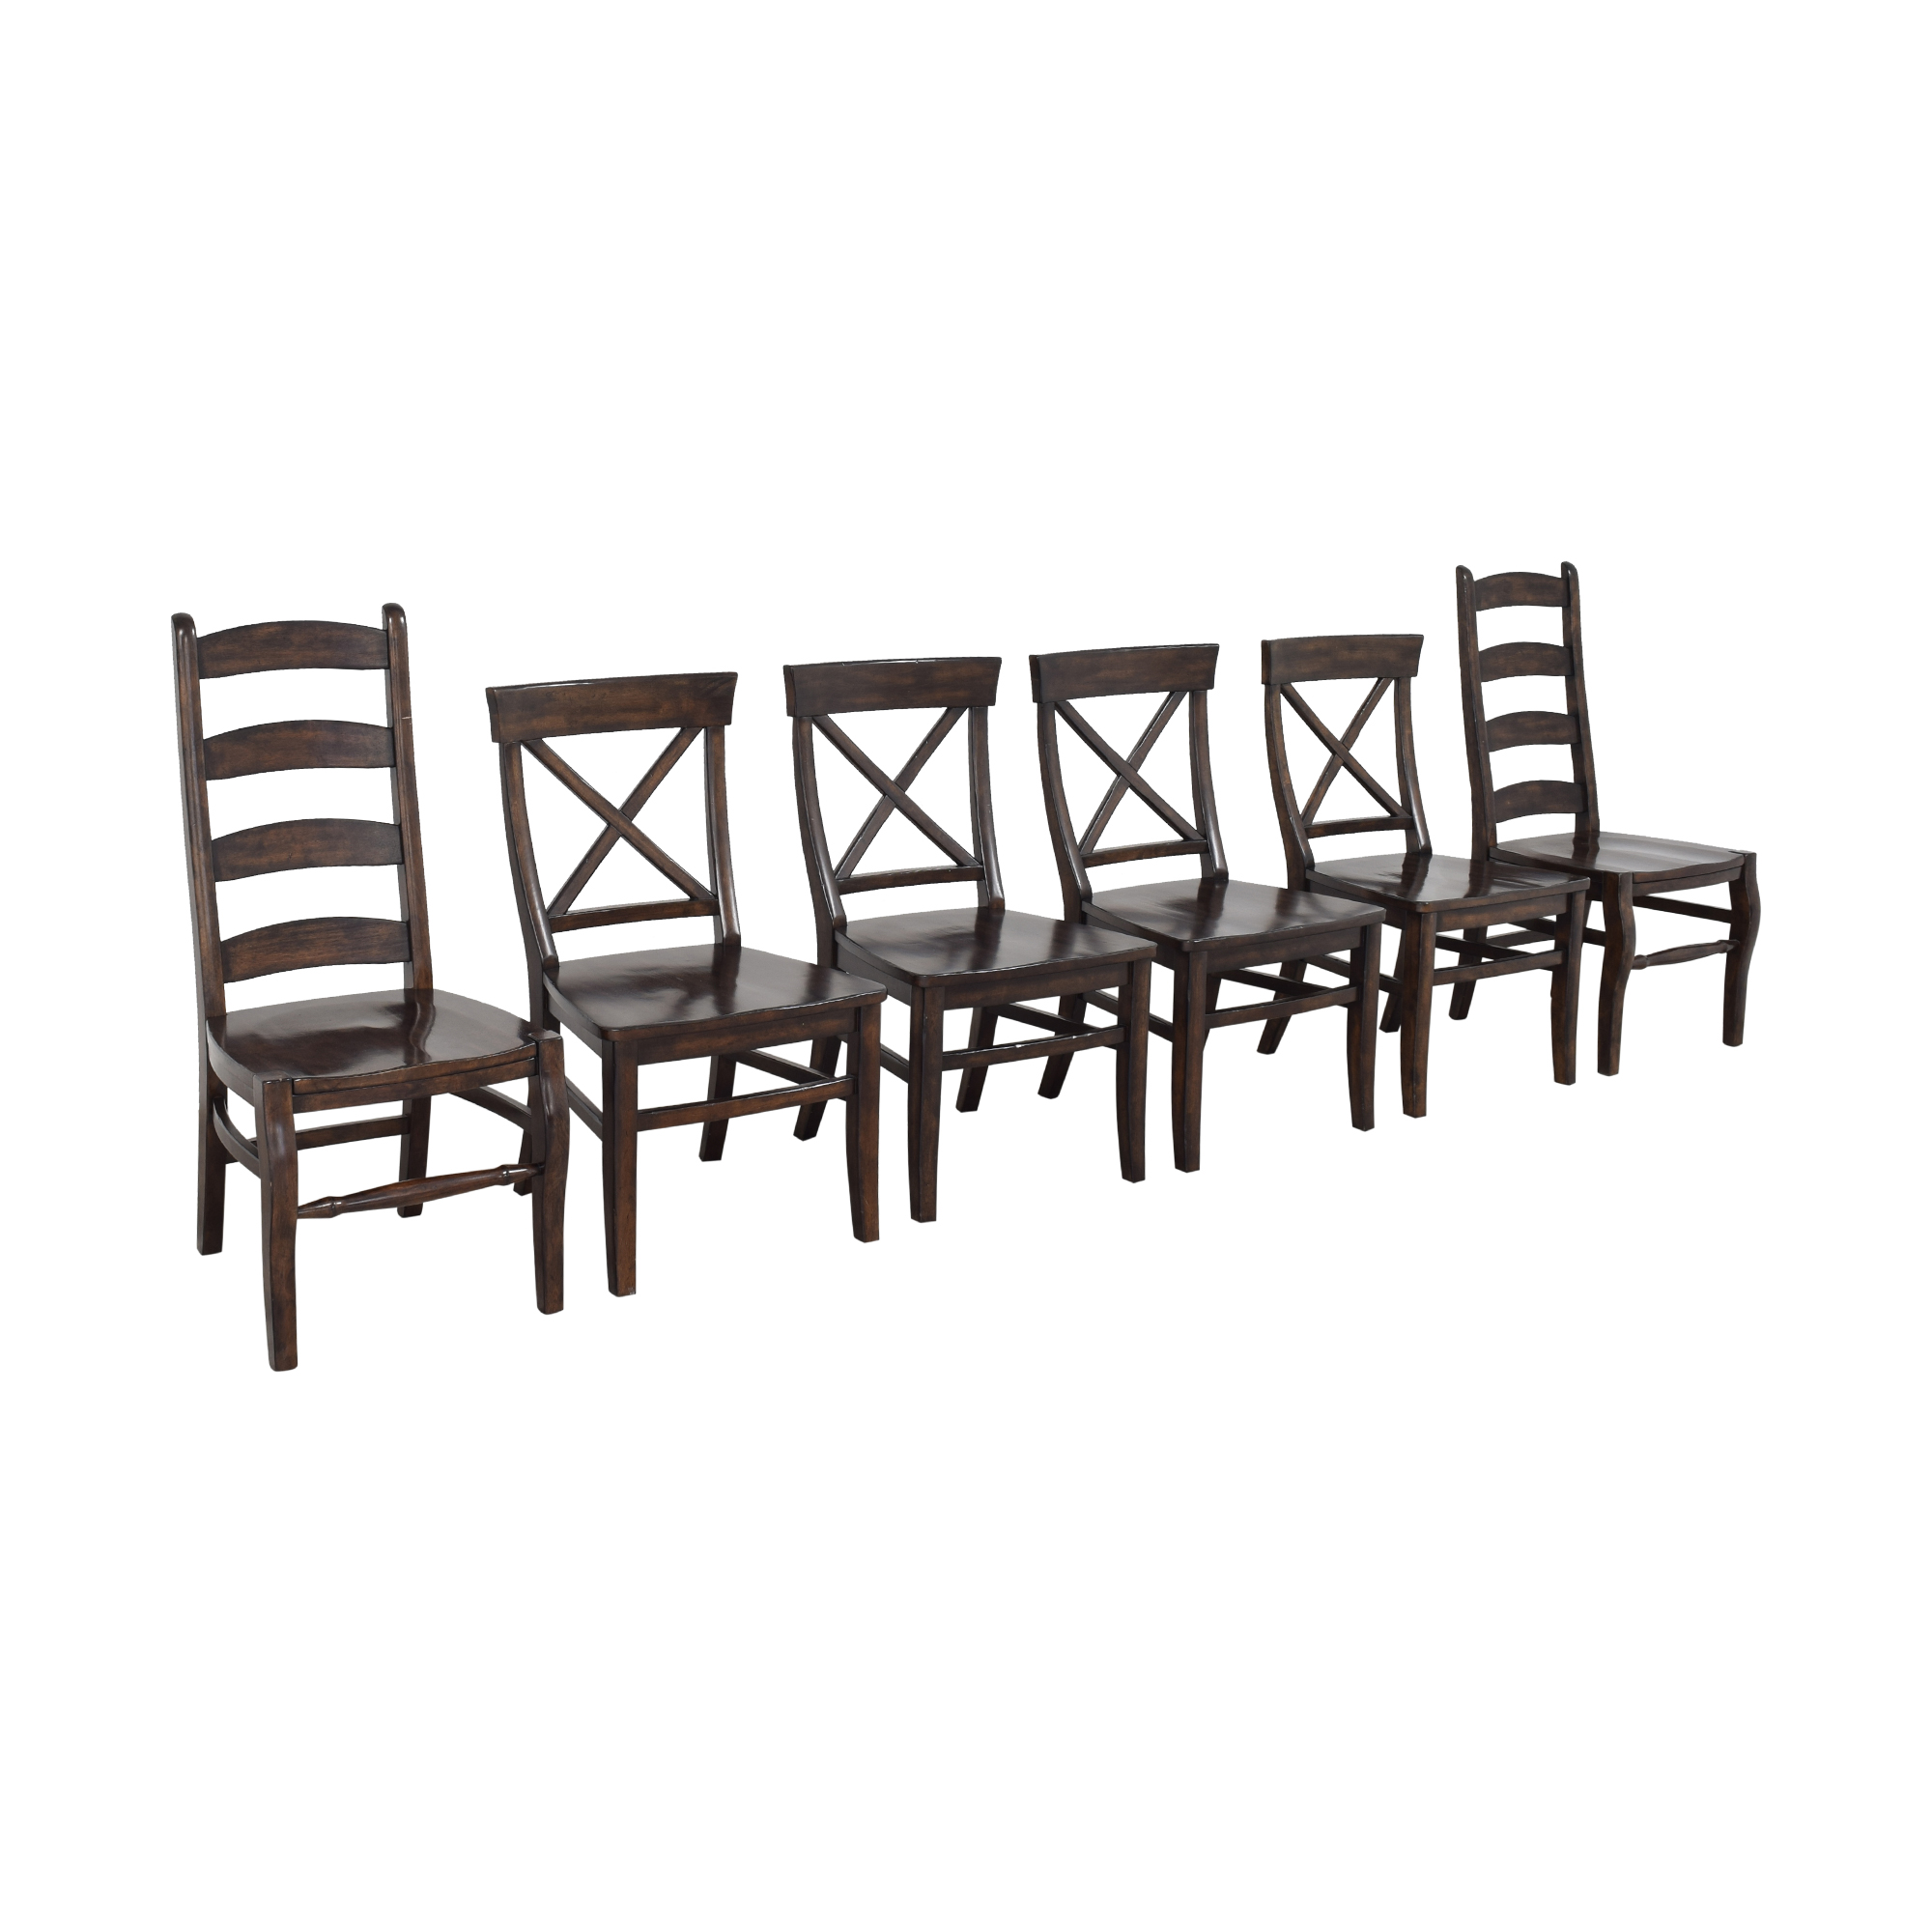 Pottery Barn Pottery Barn Aaron and Wynn Ladderback Dining Chairs pa